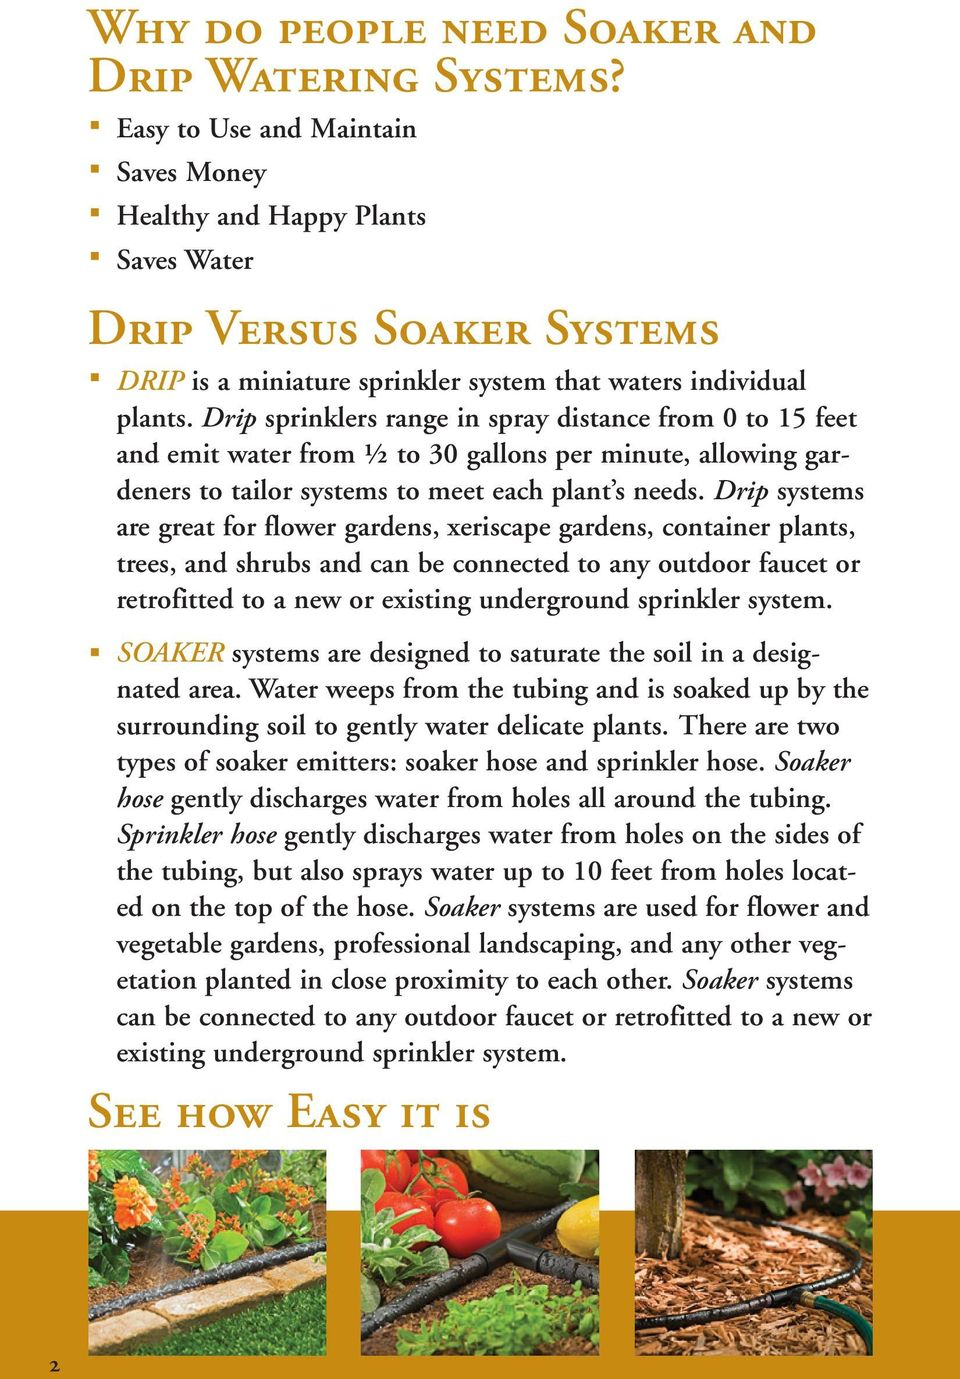 Drip sprinklers range in spray distance from 0 to 15 feet and emit water from ½ to 30 gallons per minute, allowing gardeners to tailor systems to meet each plant s needs.